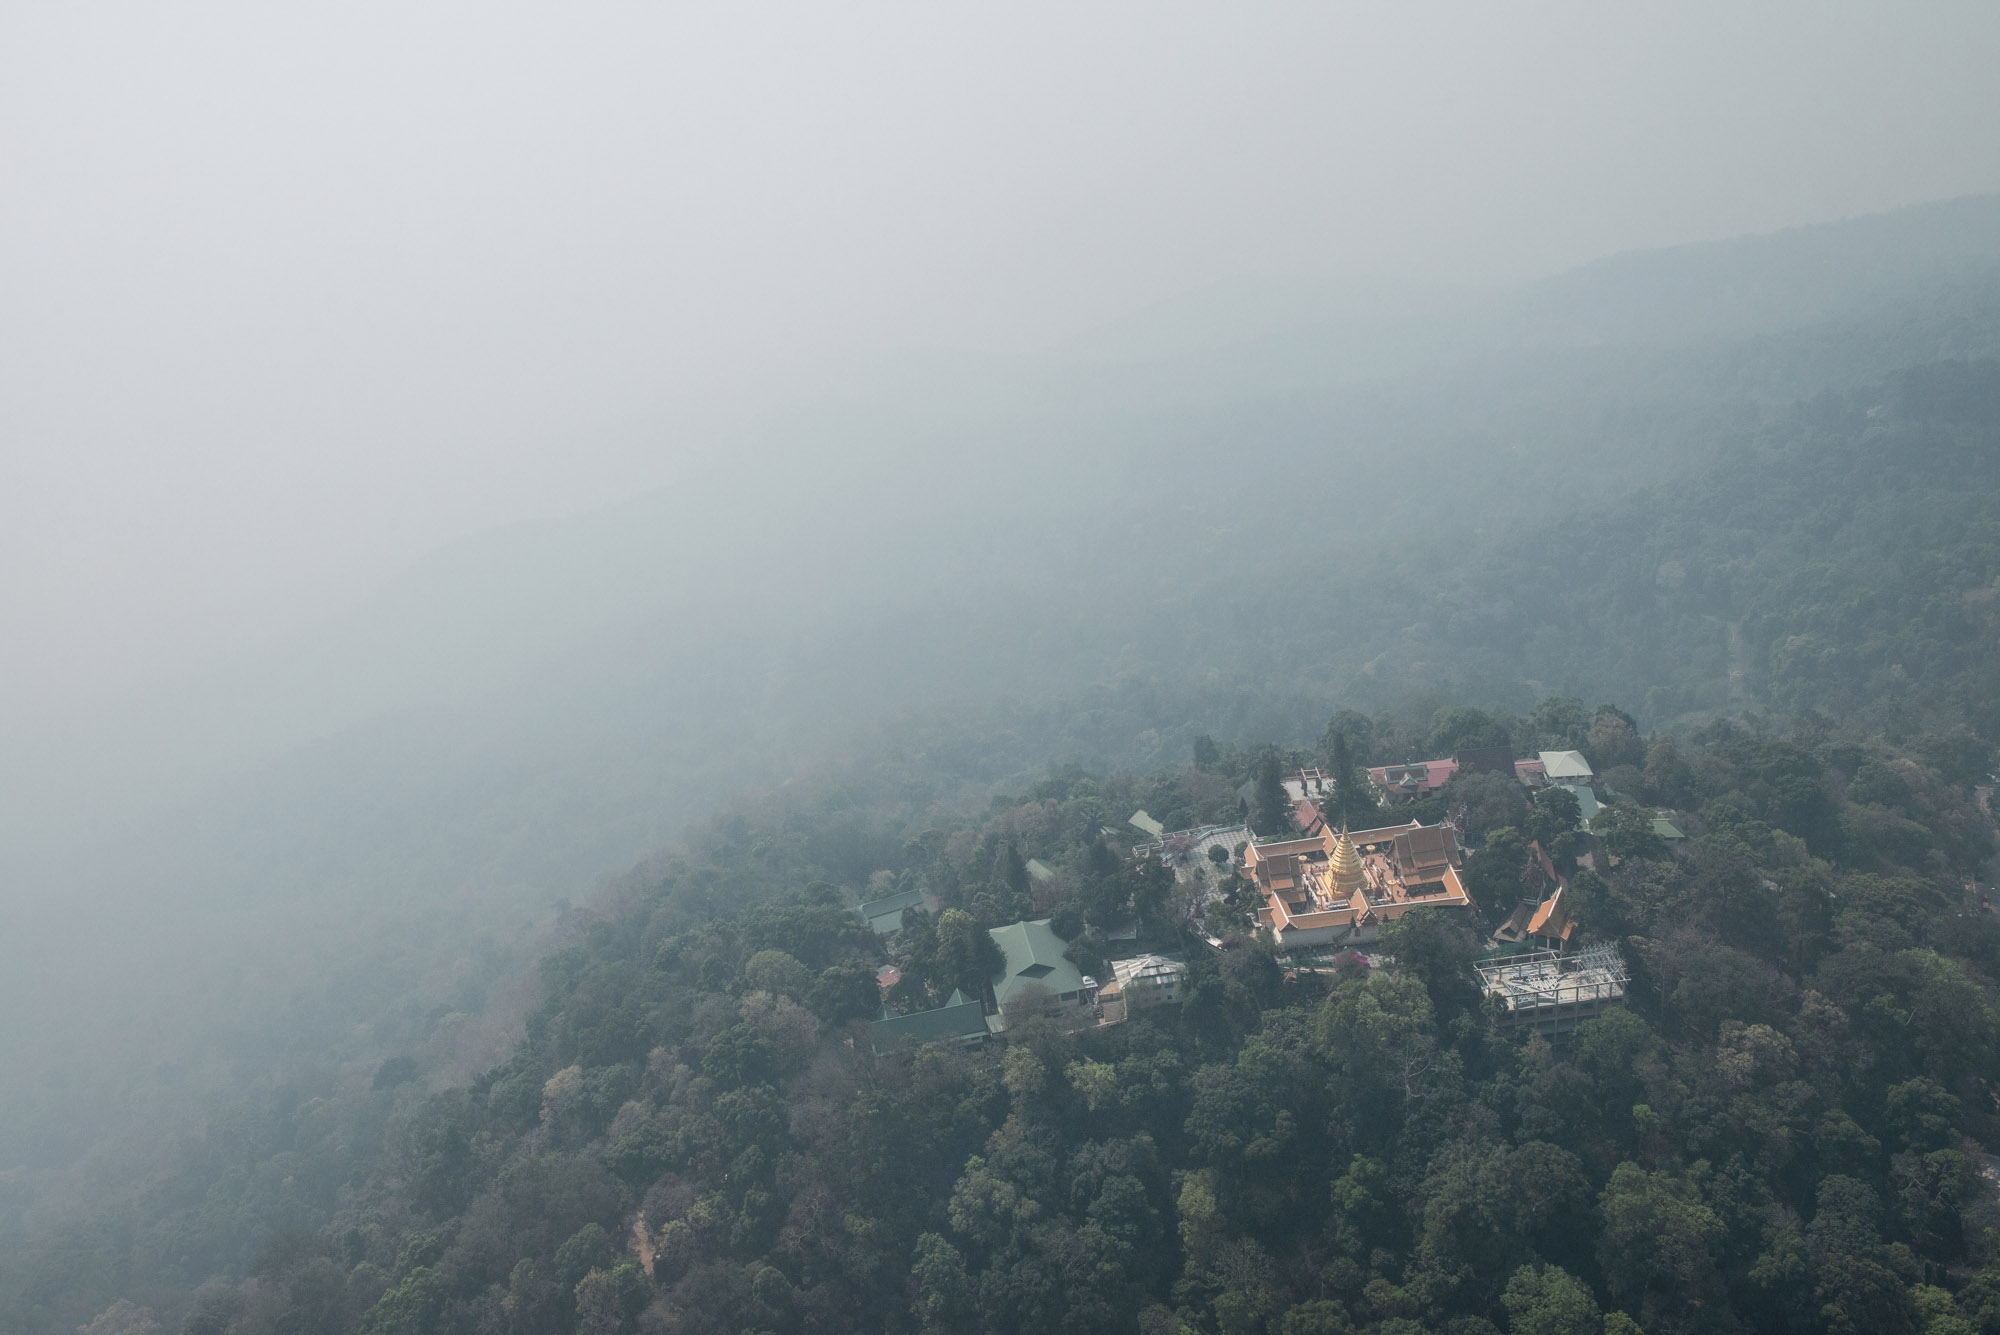 Chiangmai, the city surrounded by mountains is covered in a thick layer of smog during annual wildfire occurrence. Wat Prathat Doi Suthep in Chiangmai, an iconic temple high up in the mountain is also covered in haze.